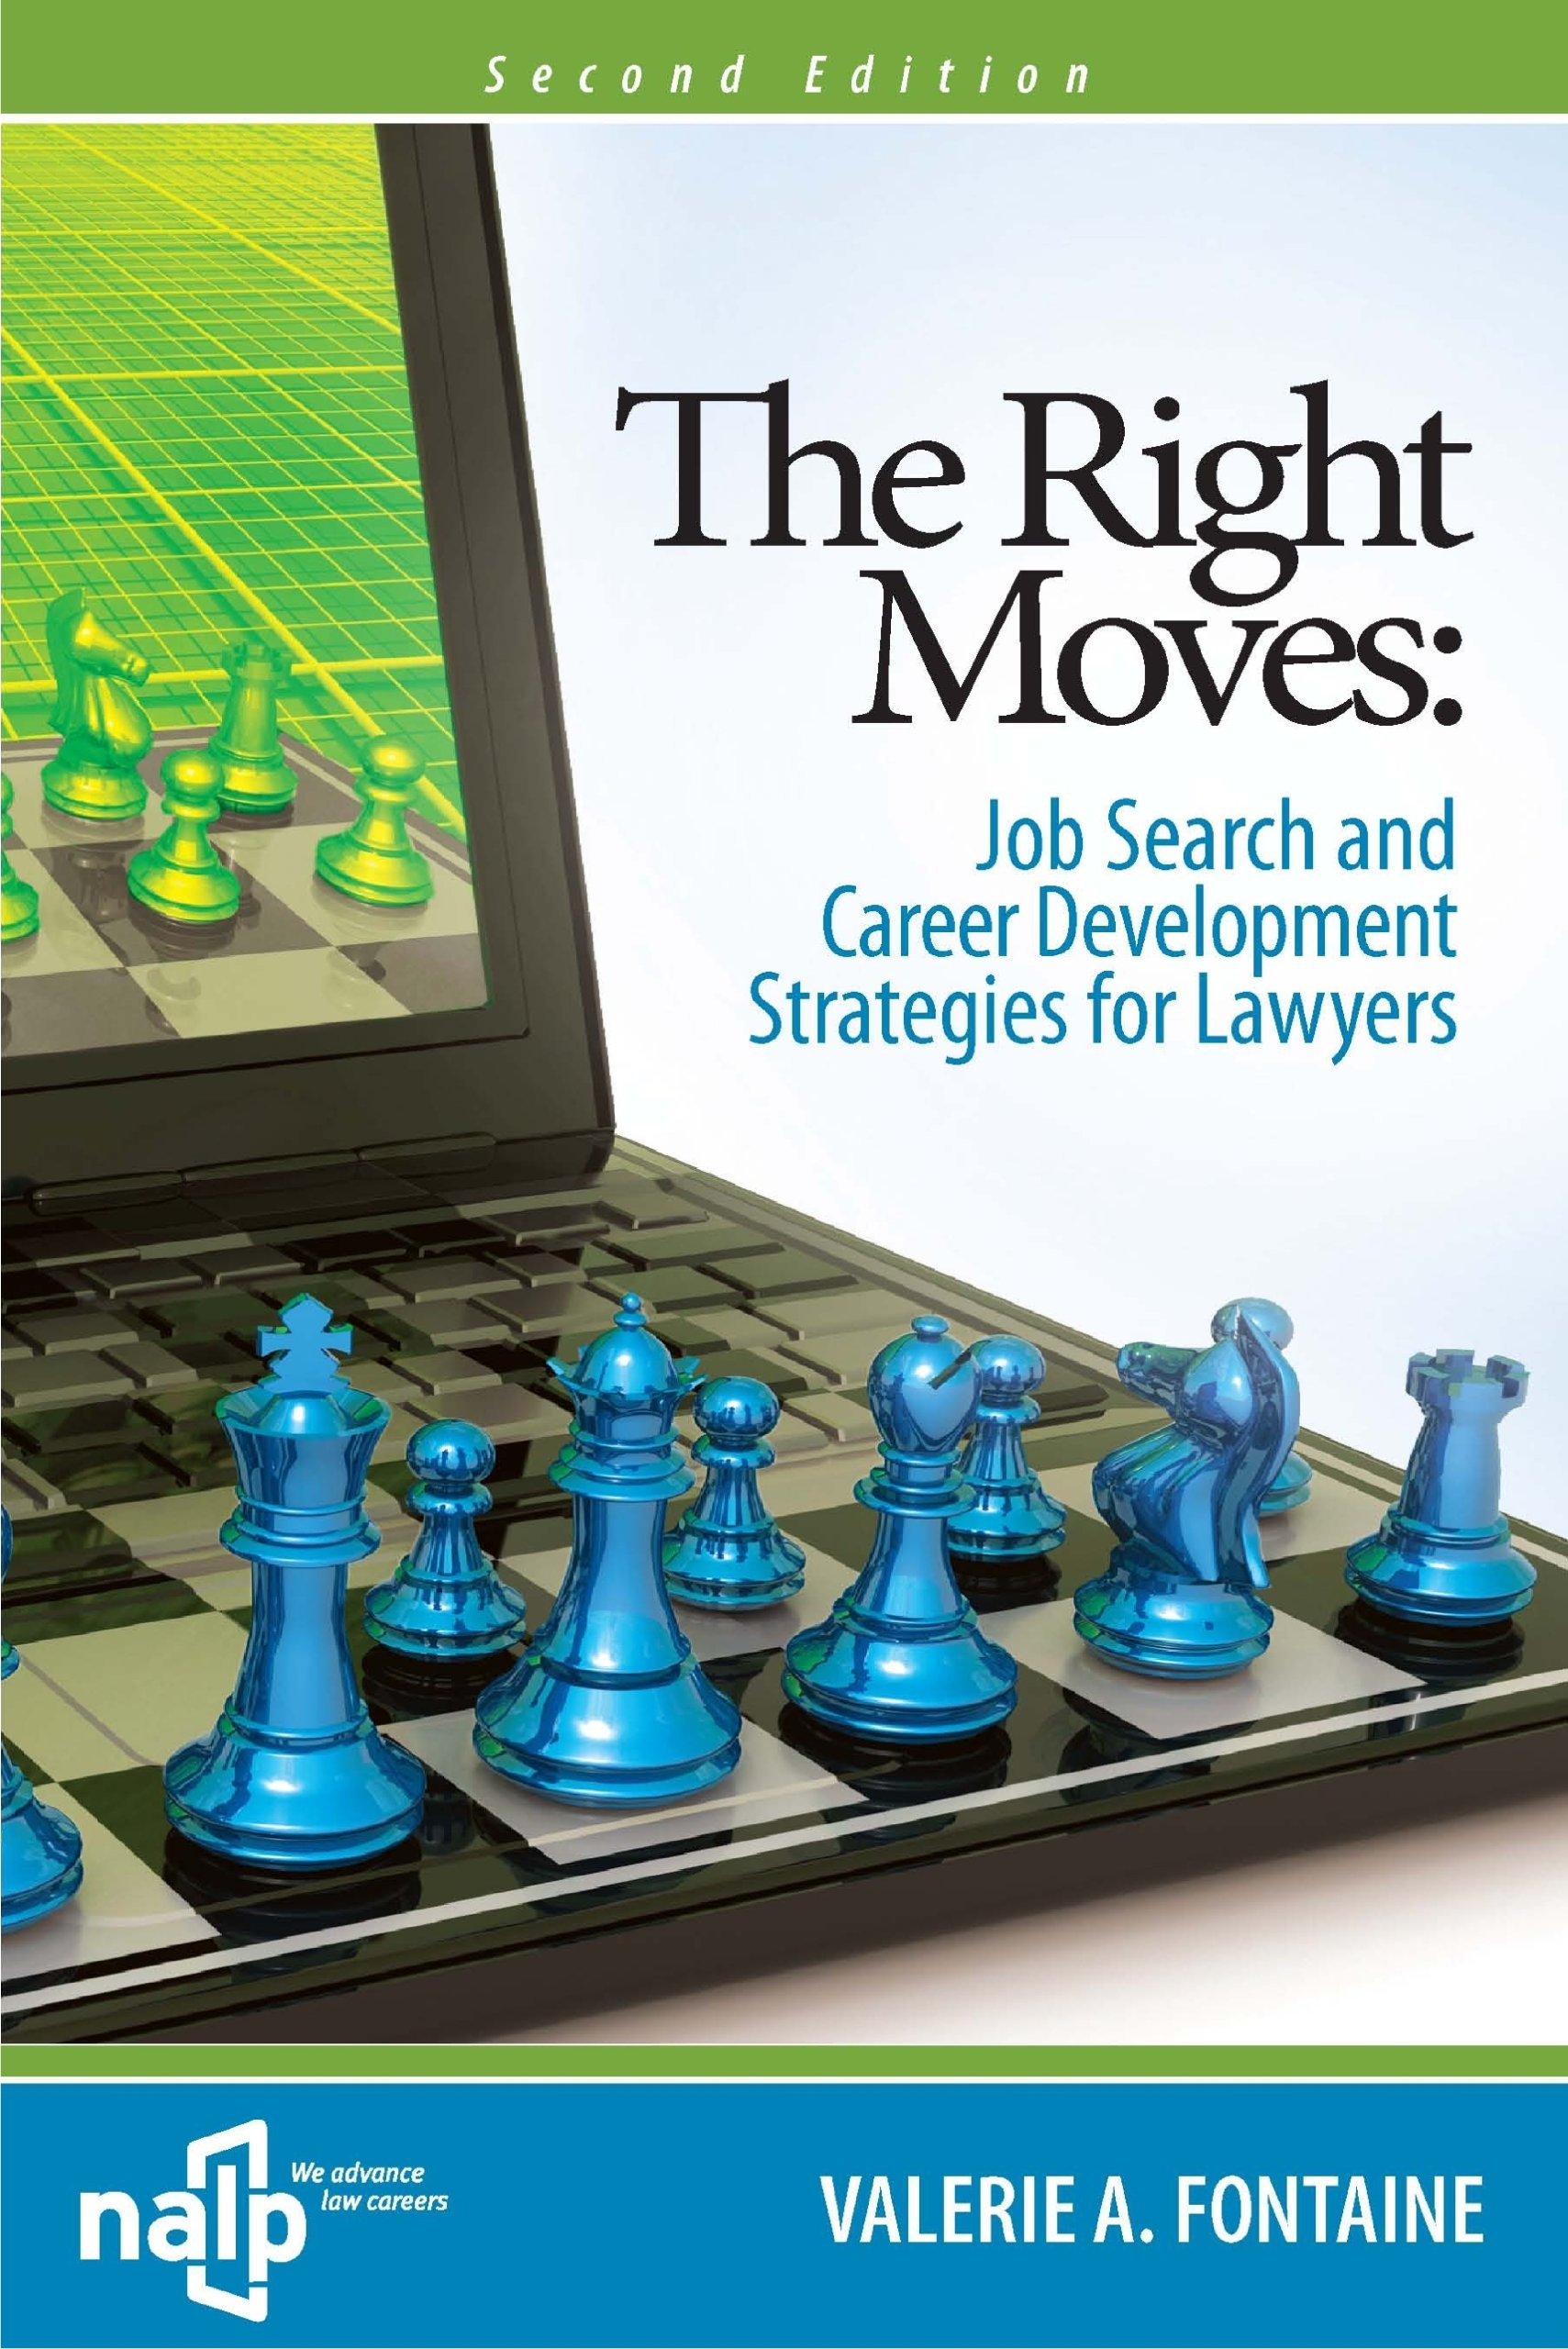 Download The Right Moves: Job Search and Career Development Strategies for Lawyers 2nd Edition pdf